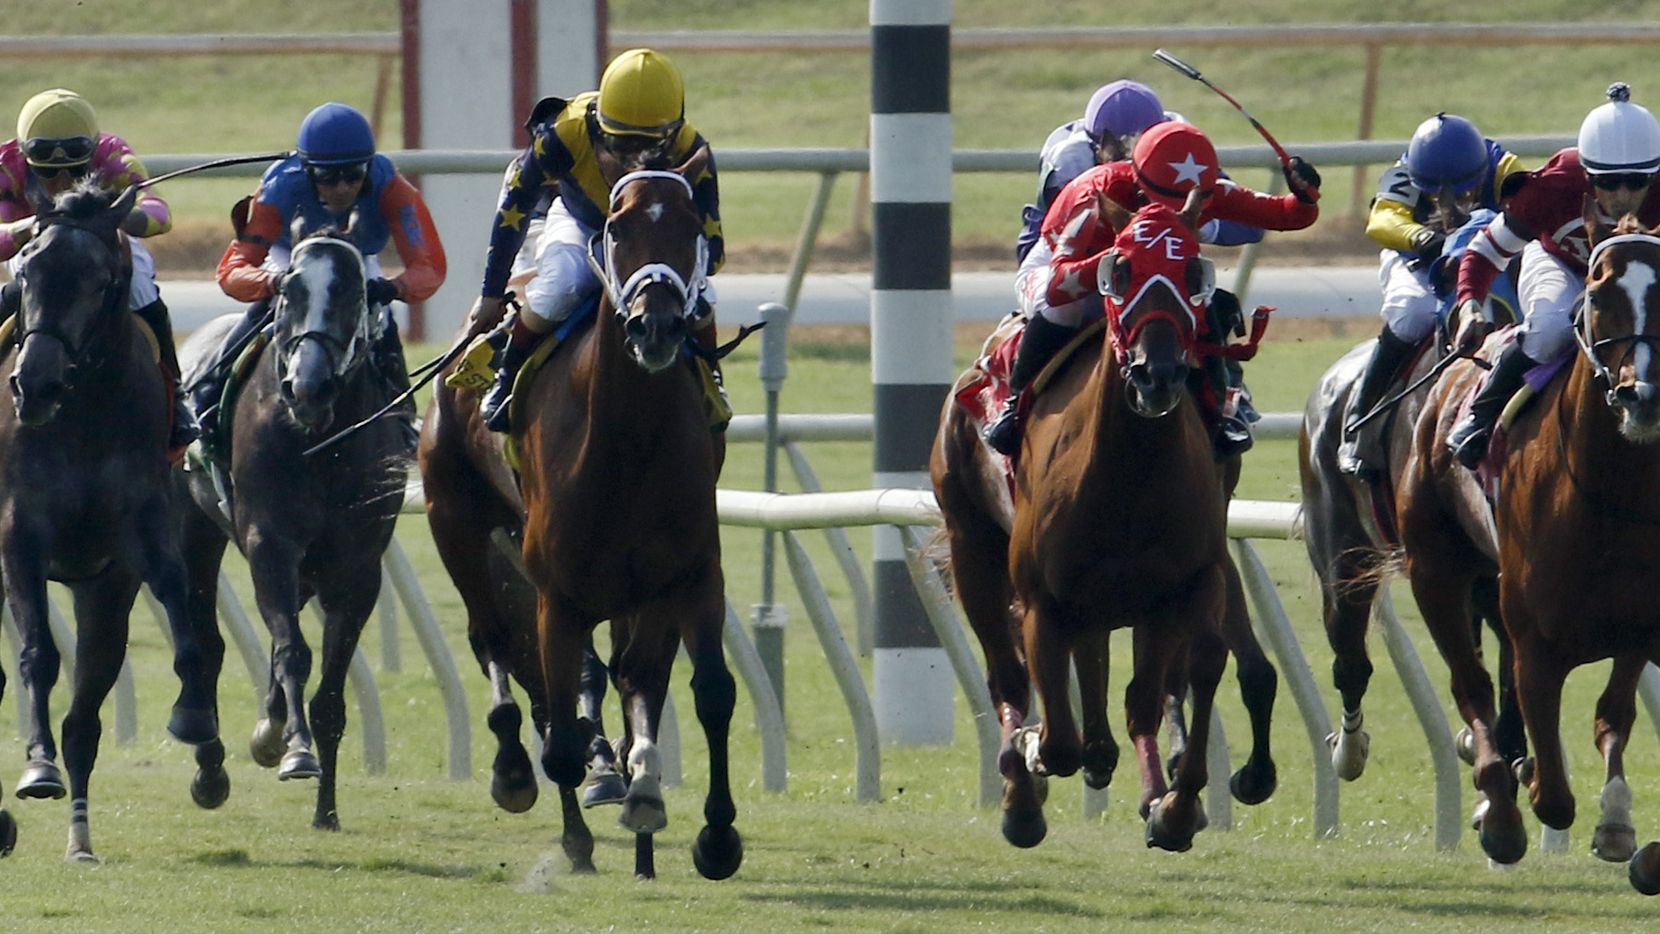 Horses head into the home stretch at the Lone Star Park Turf Stakes in Grand Prairie on May 27.